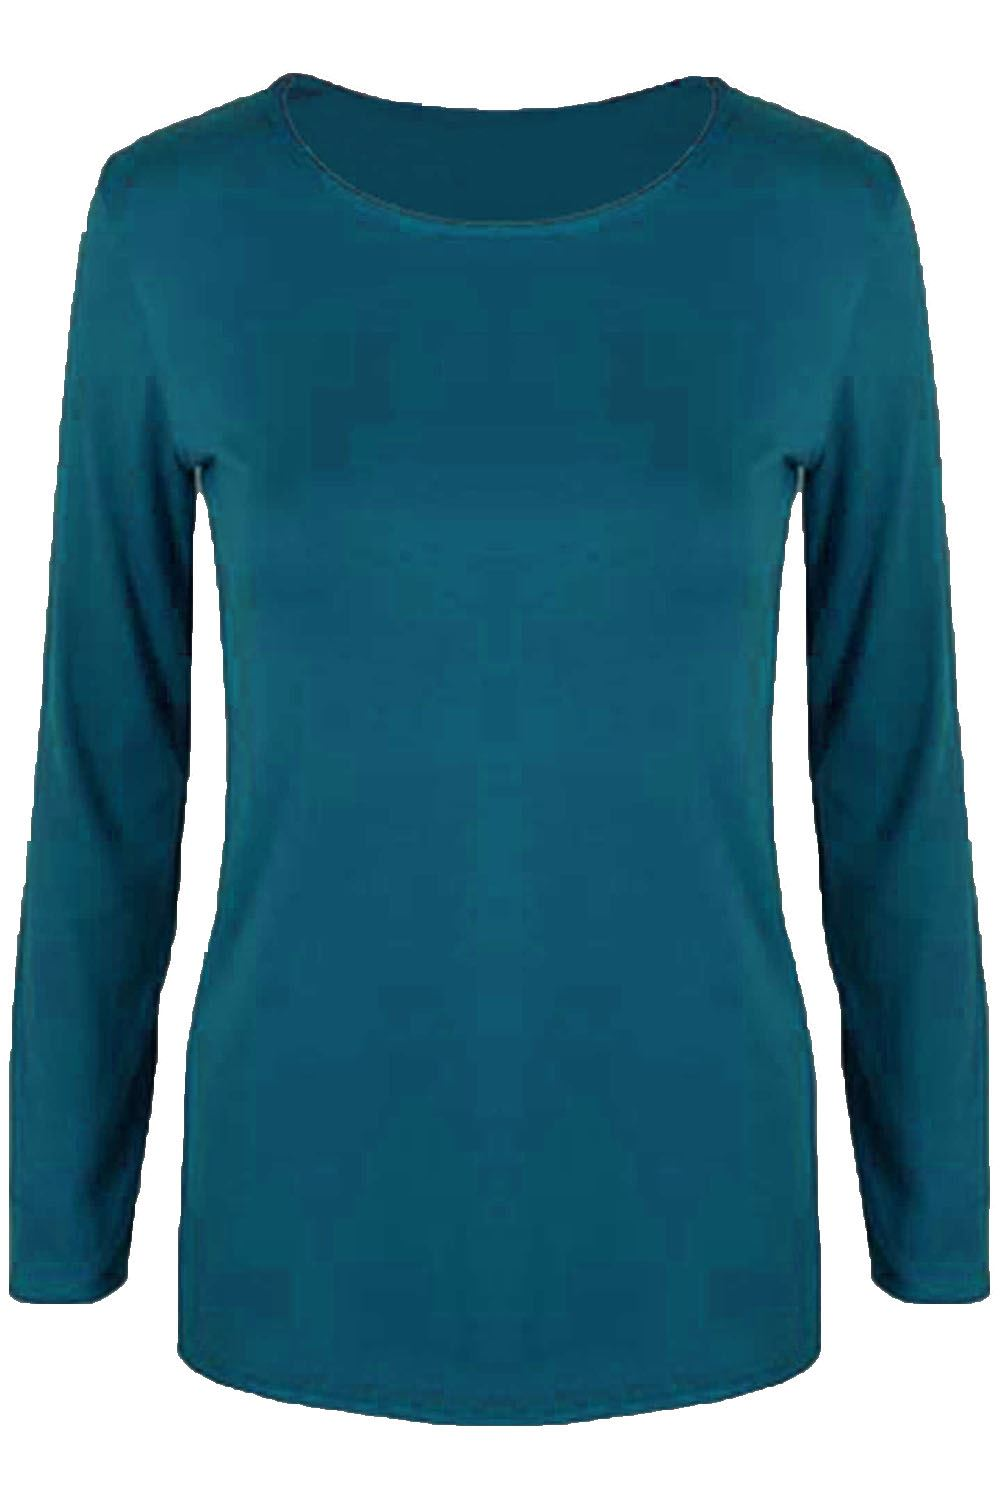 Womens Ladies Long Sleeves Stretchy Celebrity Plain Round Neck T Tee Shirt Top